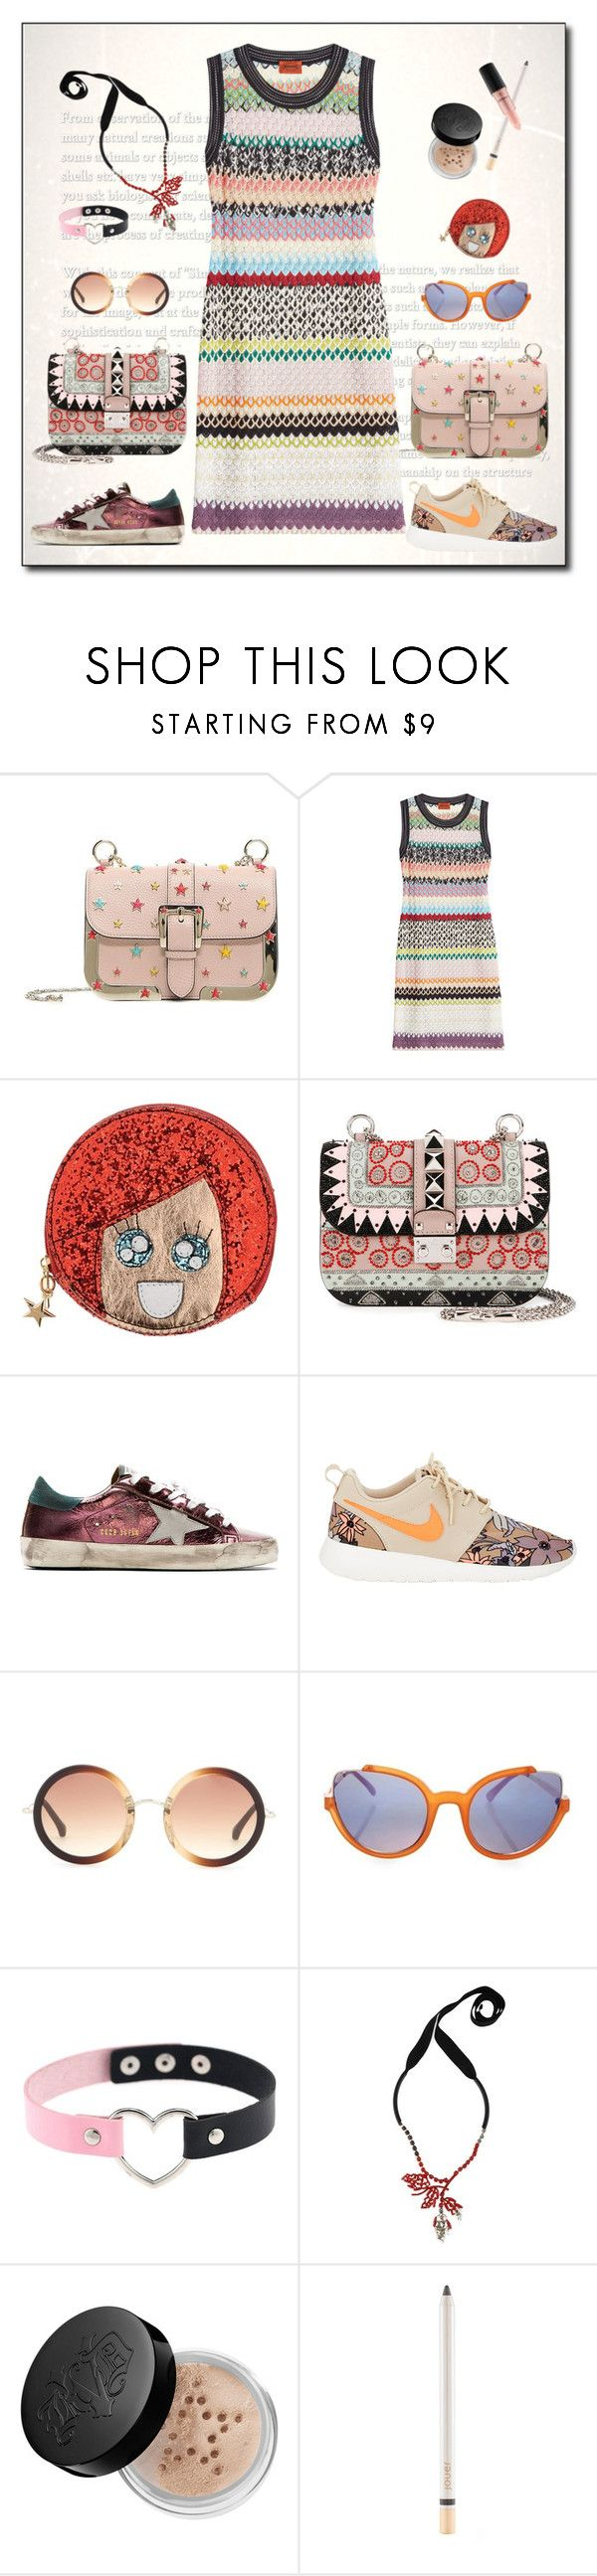 """Sporty Chic: Sneakers and Dresses"" by ysmn-pan ❤ liked on Polyvore featuring RED Valentino, Missoni, Argento Antico, Valentino, Golden Goose, NIKE, The Row, Marni, Kat Von D and Jouer"